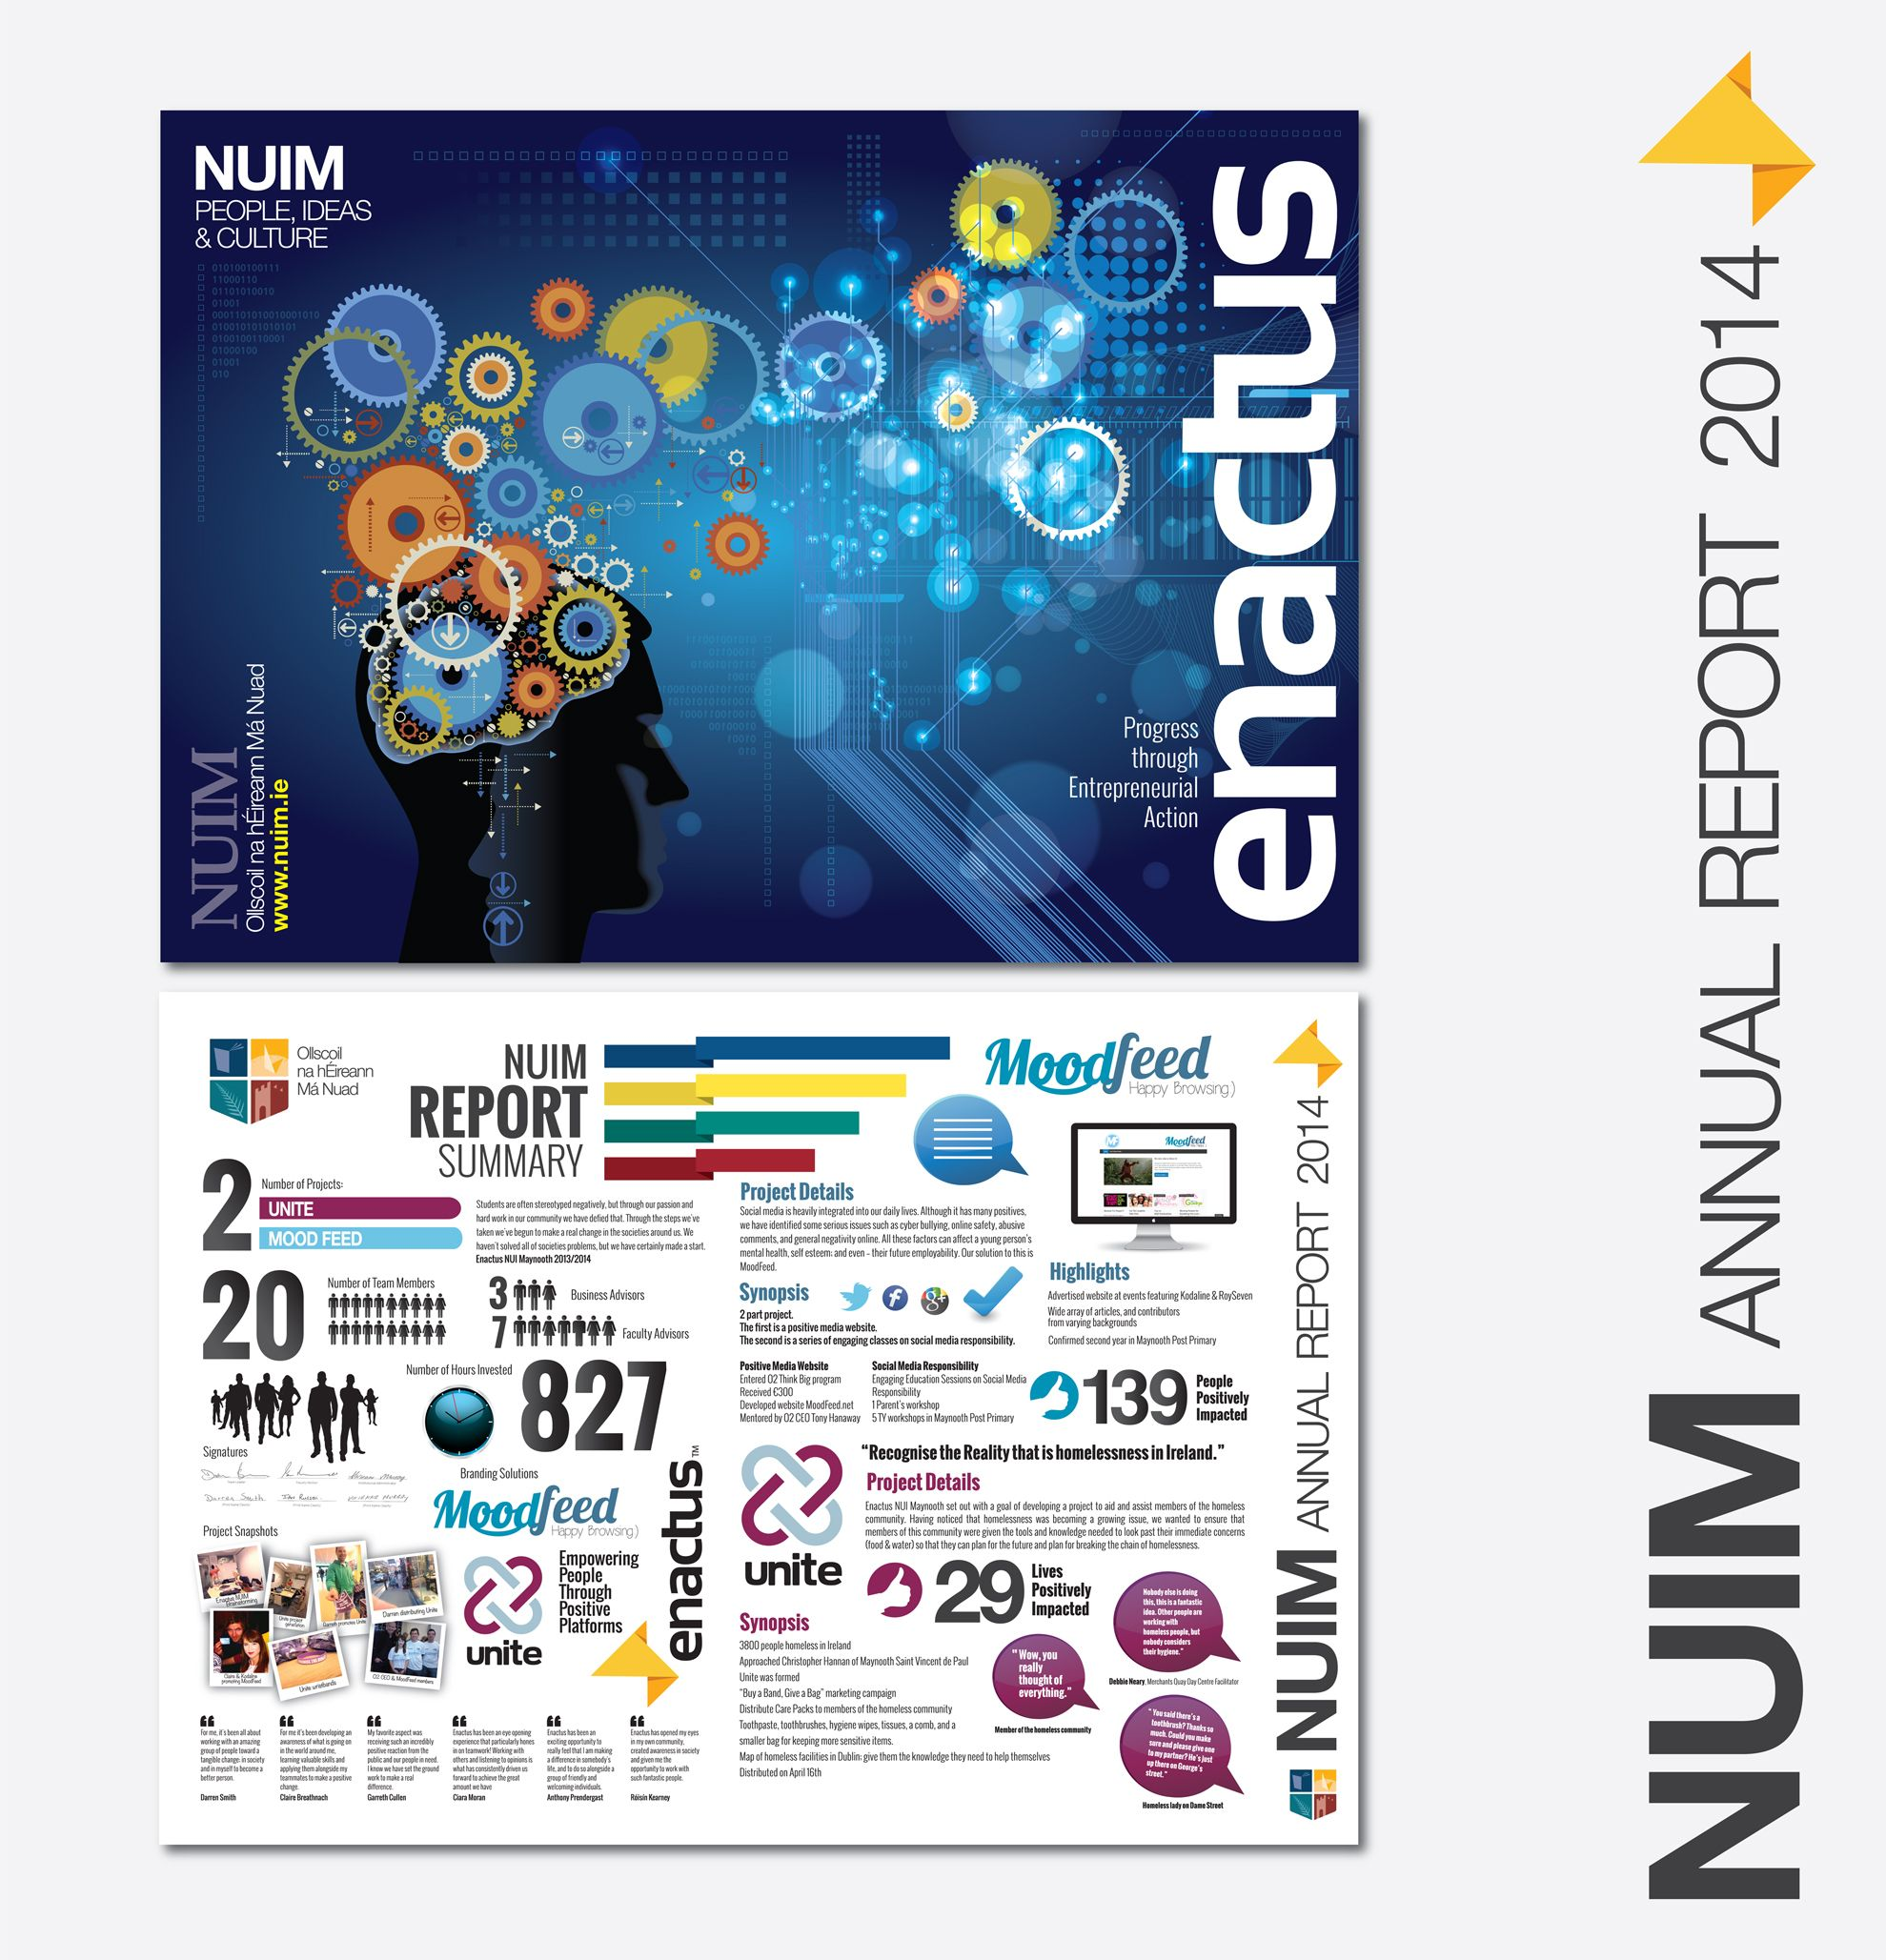 Enactus Annual Report Designed For Nui Maynooth Enactus